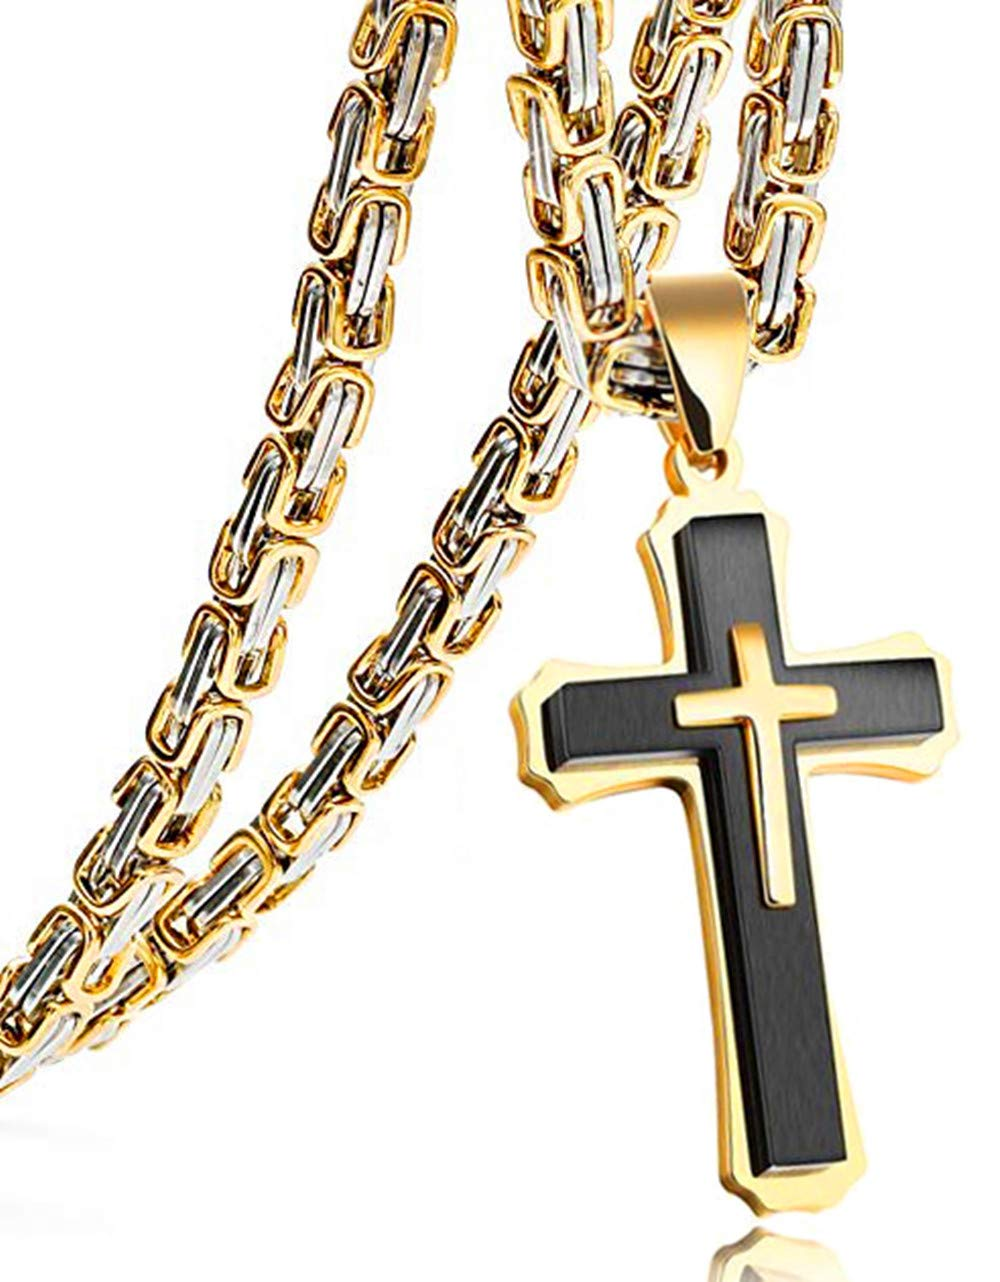 Cross Pendant Necklace Mens Boys Stainless Steel Gold Silver Black Byzantine Chain 20 22 24 26 28 30 32 34 36 38 40inch 40.0 inches, Gold Silver Tone